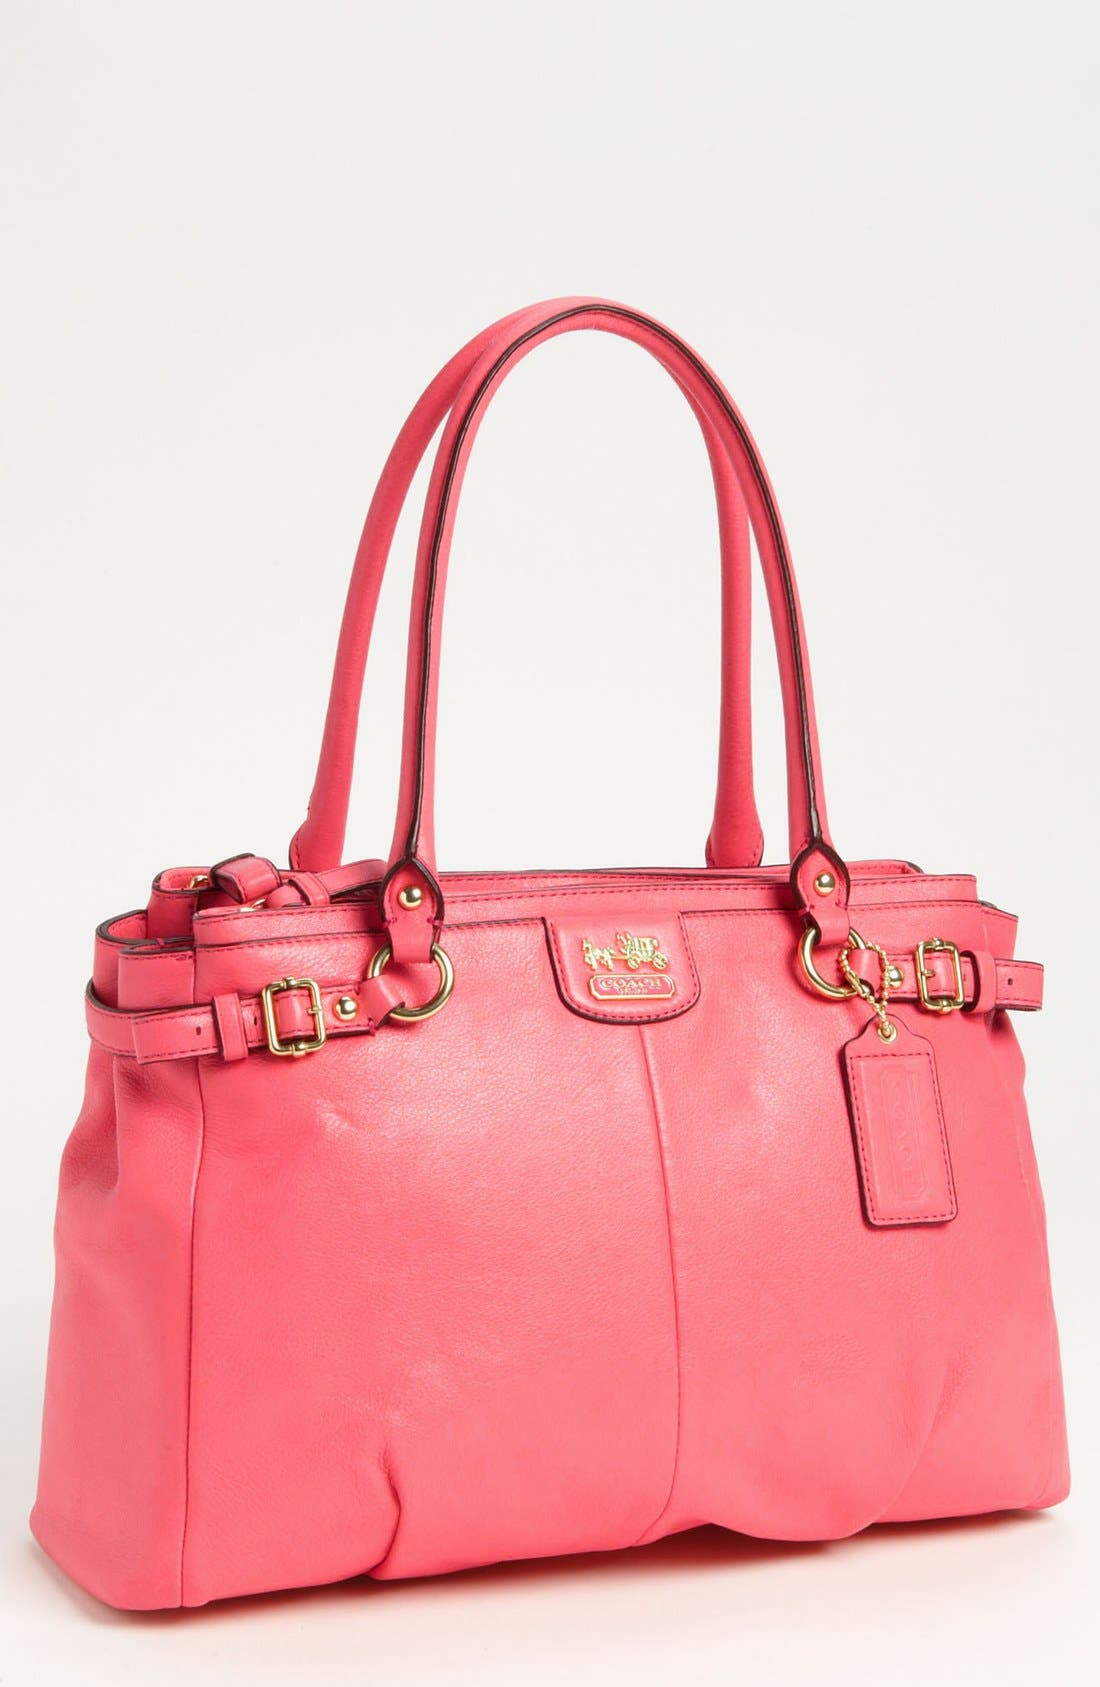 Main Image - COACH 'Madison - Kara' Leather Carryall